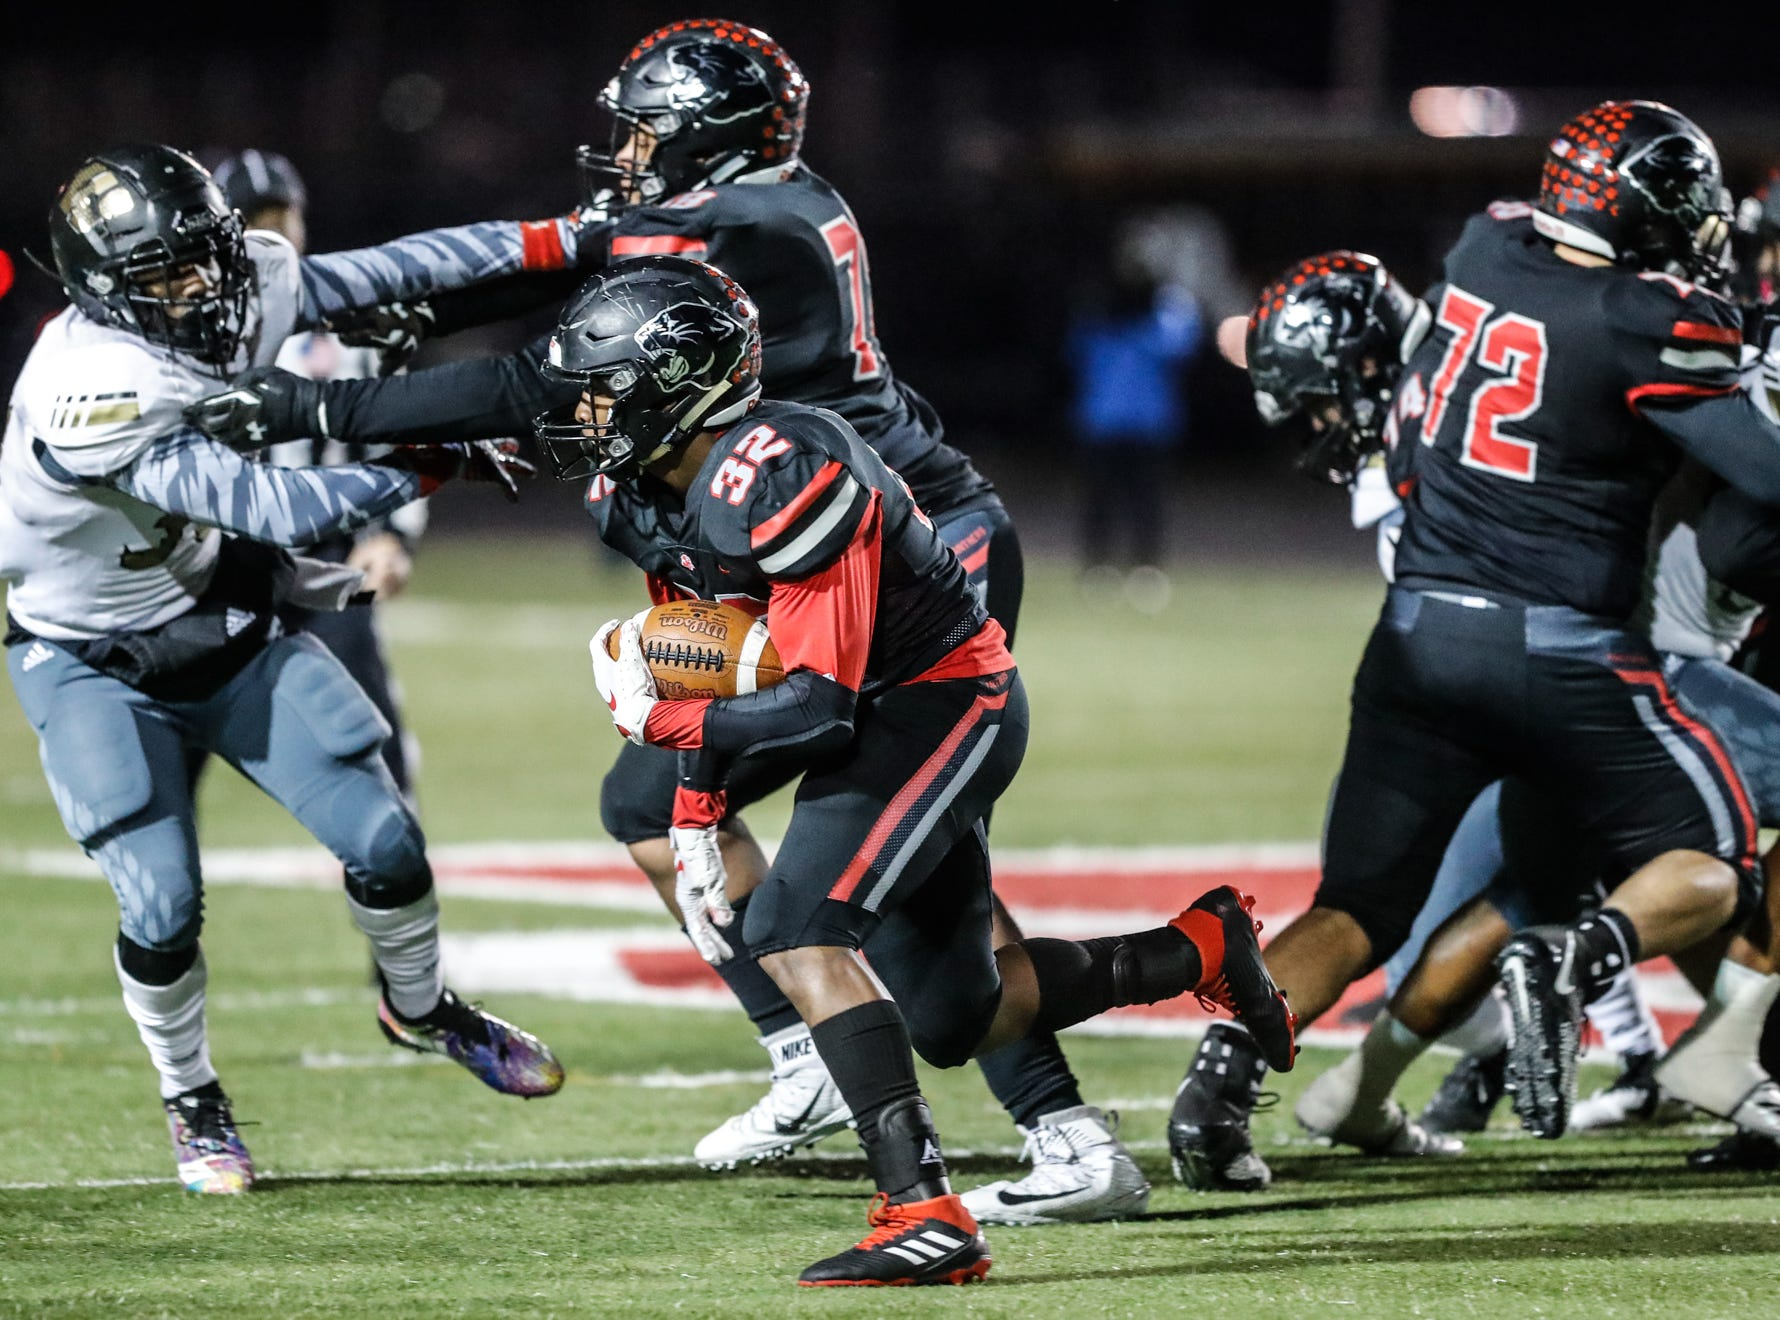 North Central High School Panthers running back Alexander Tarver (32) runs the ball during a regional finals game against the against the Warren Central High School Warriors at North Central High School on Friday, Nov. 9, 2018.